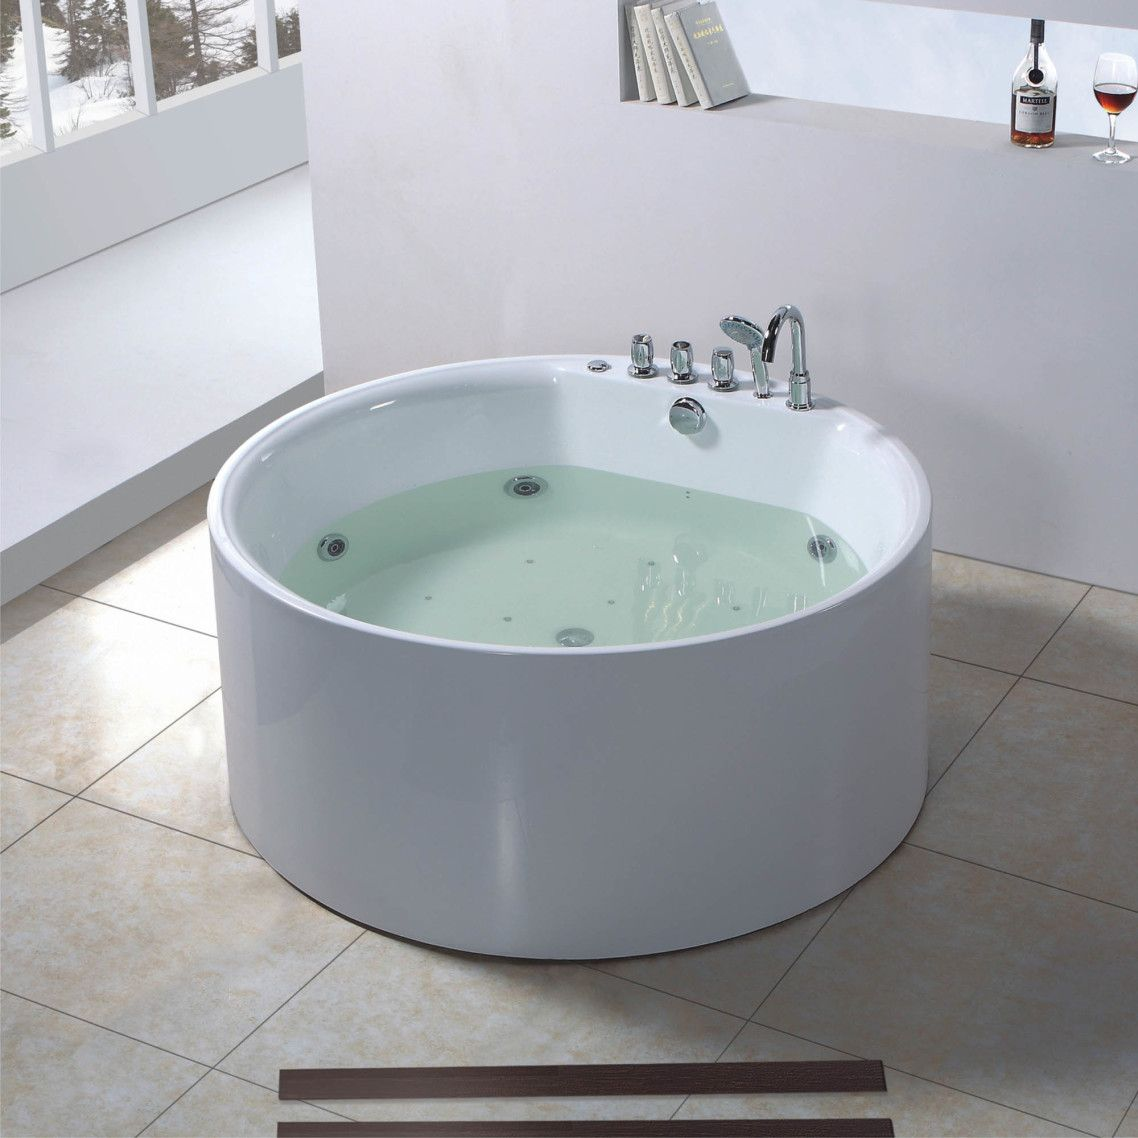 Cool Toilets For Sale Baths For Sale Cool Round White Walk In Baths Jacuzzi